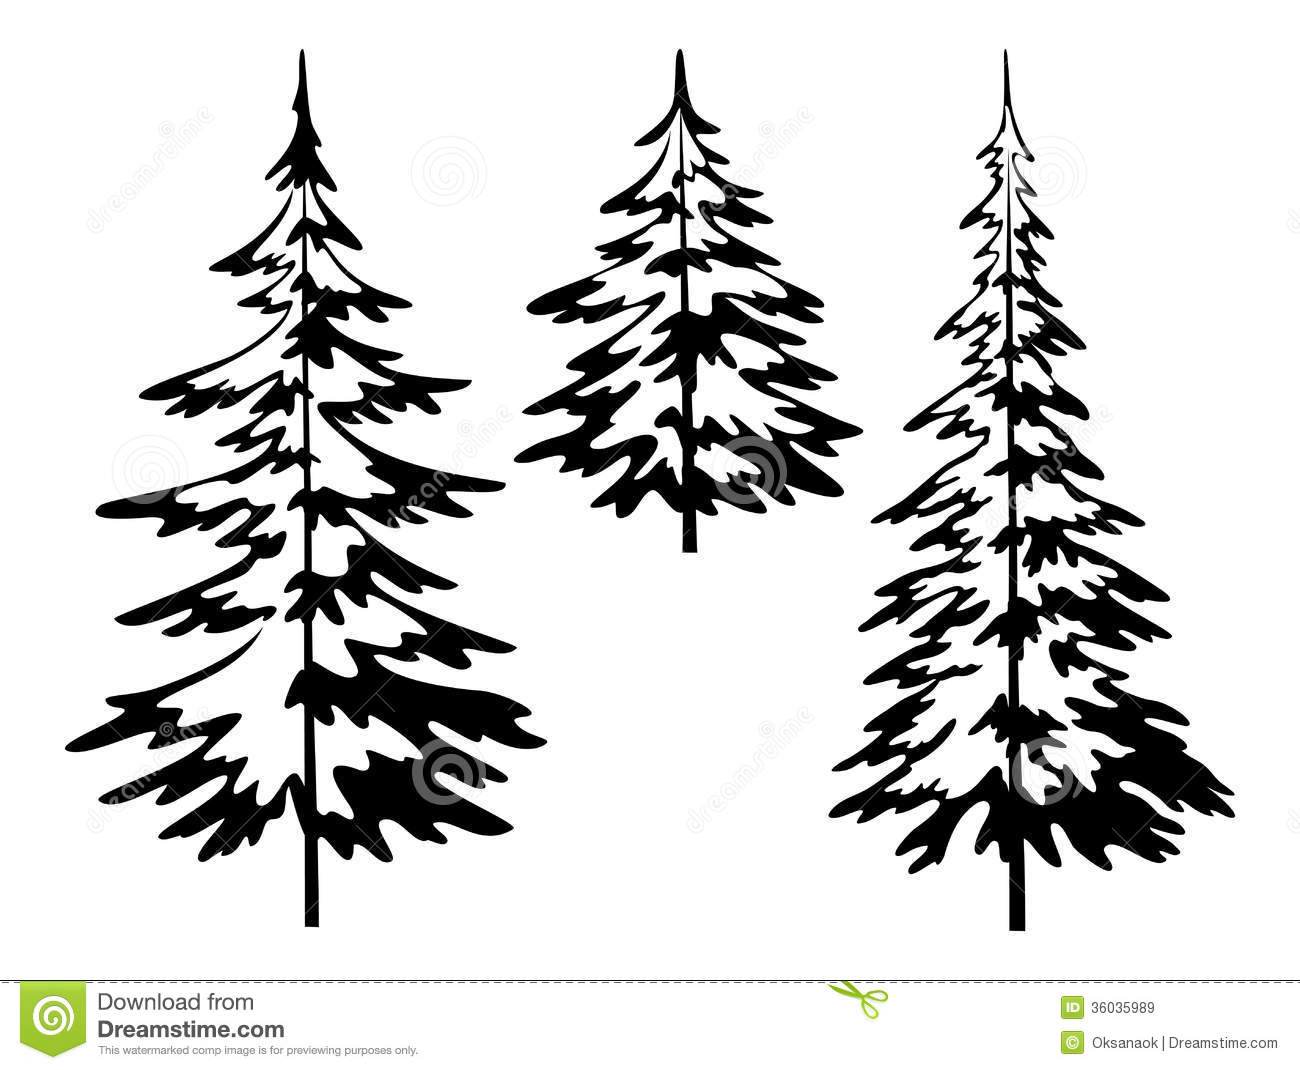 Drawn fir tree Trees Search illustrations  of